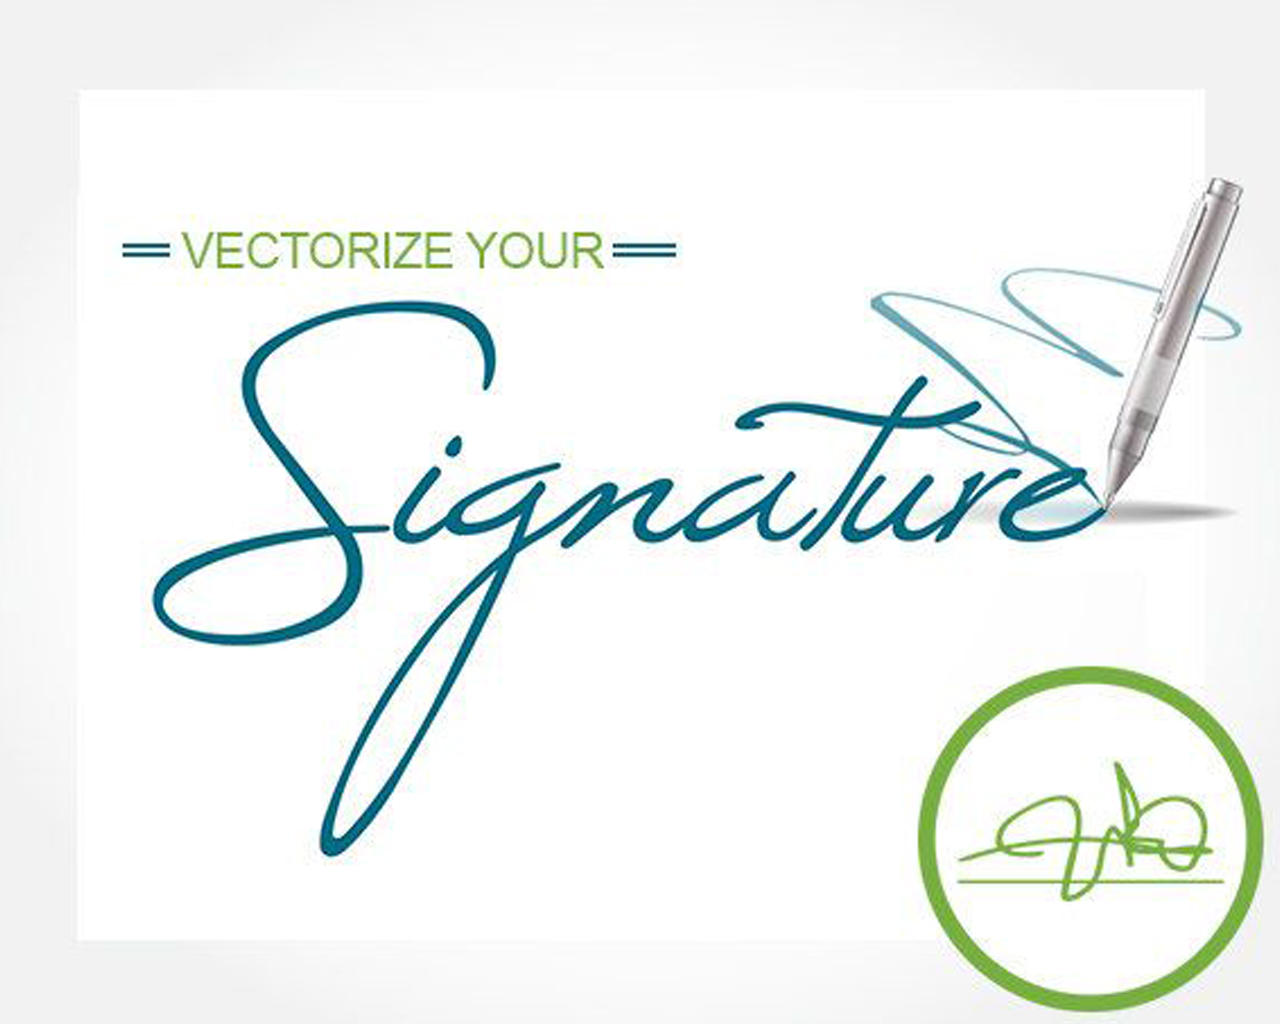 Vectorize, Trace, Redraw Your Very Own Hand Drawn Signature Logo by Qreati - 111018